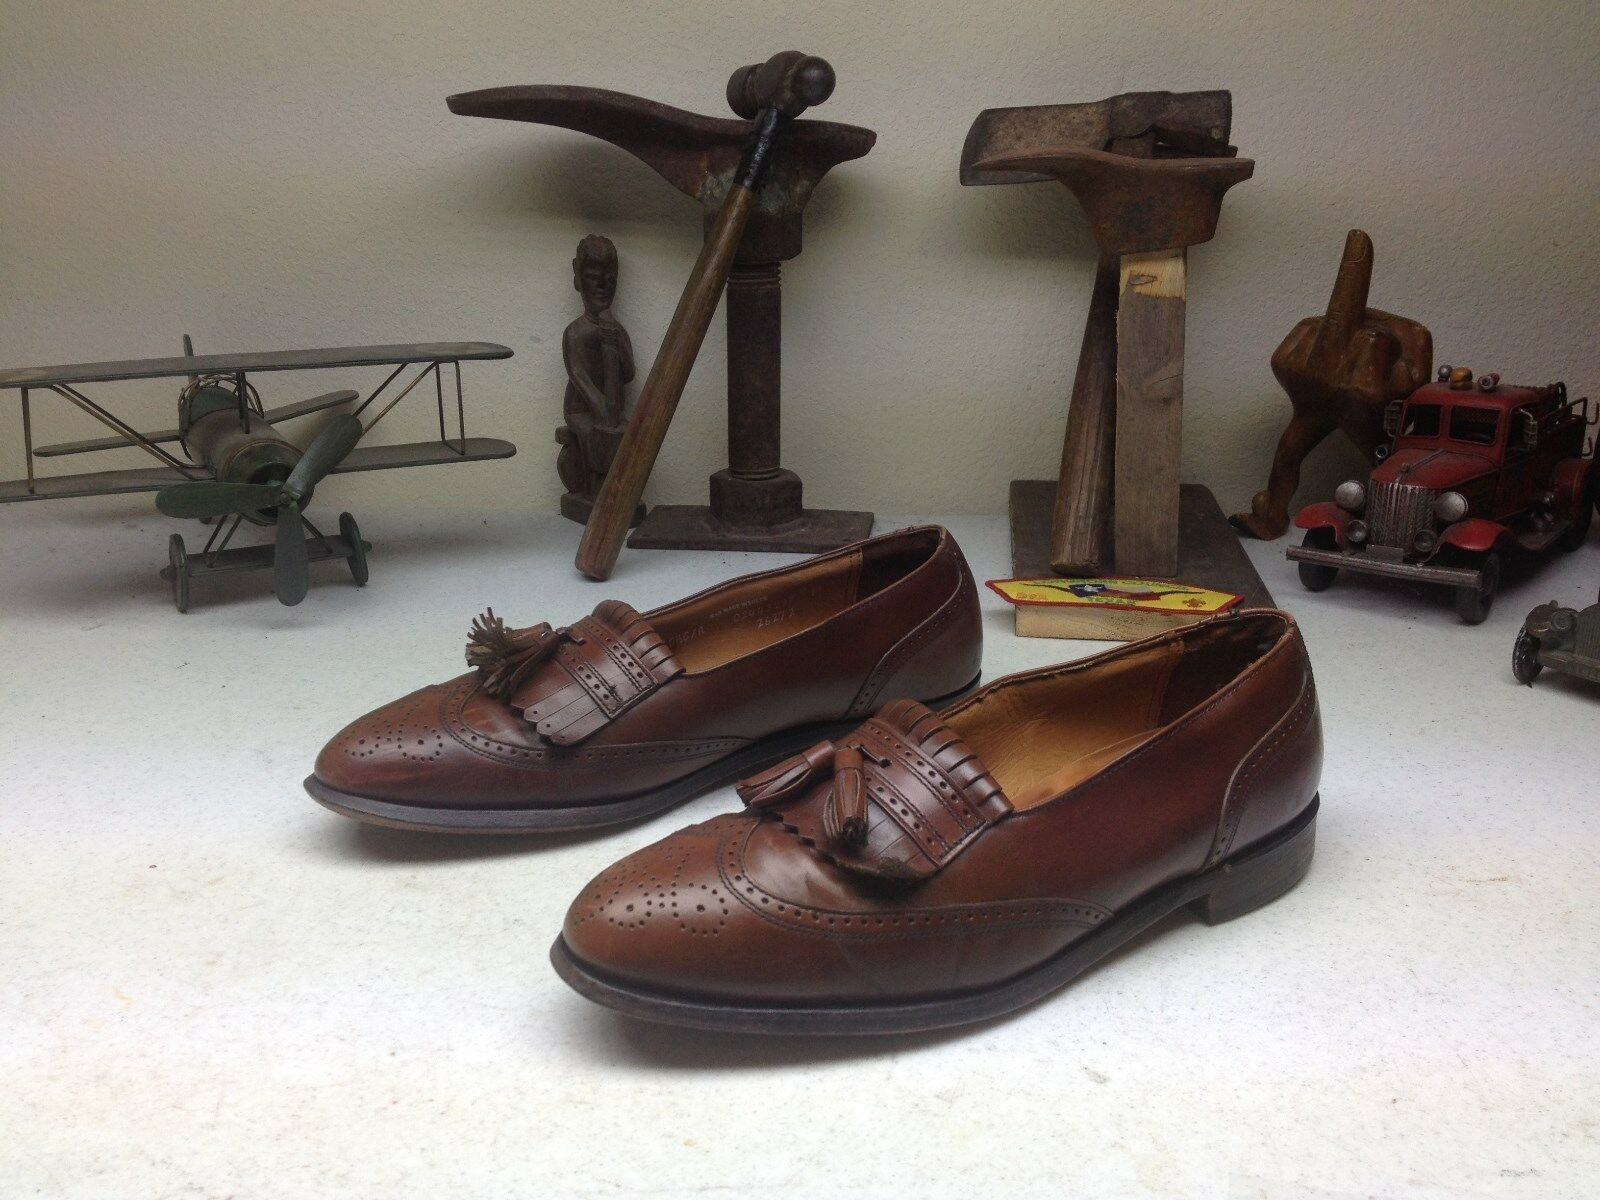 MADE IN USA BROWN BOSTONIAN LEATHER TASSLE KILTIE WING TIP LOAFER SHOES 10.5 C A